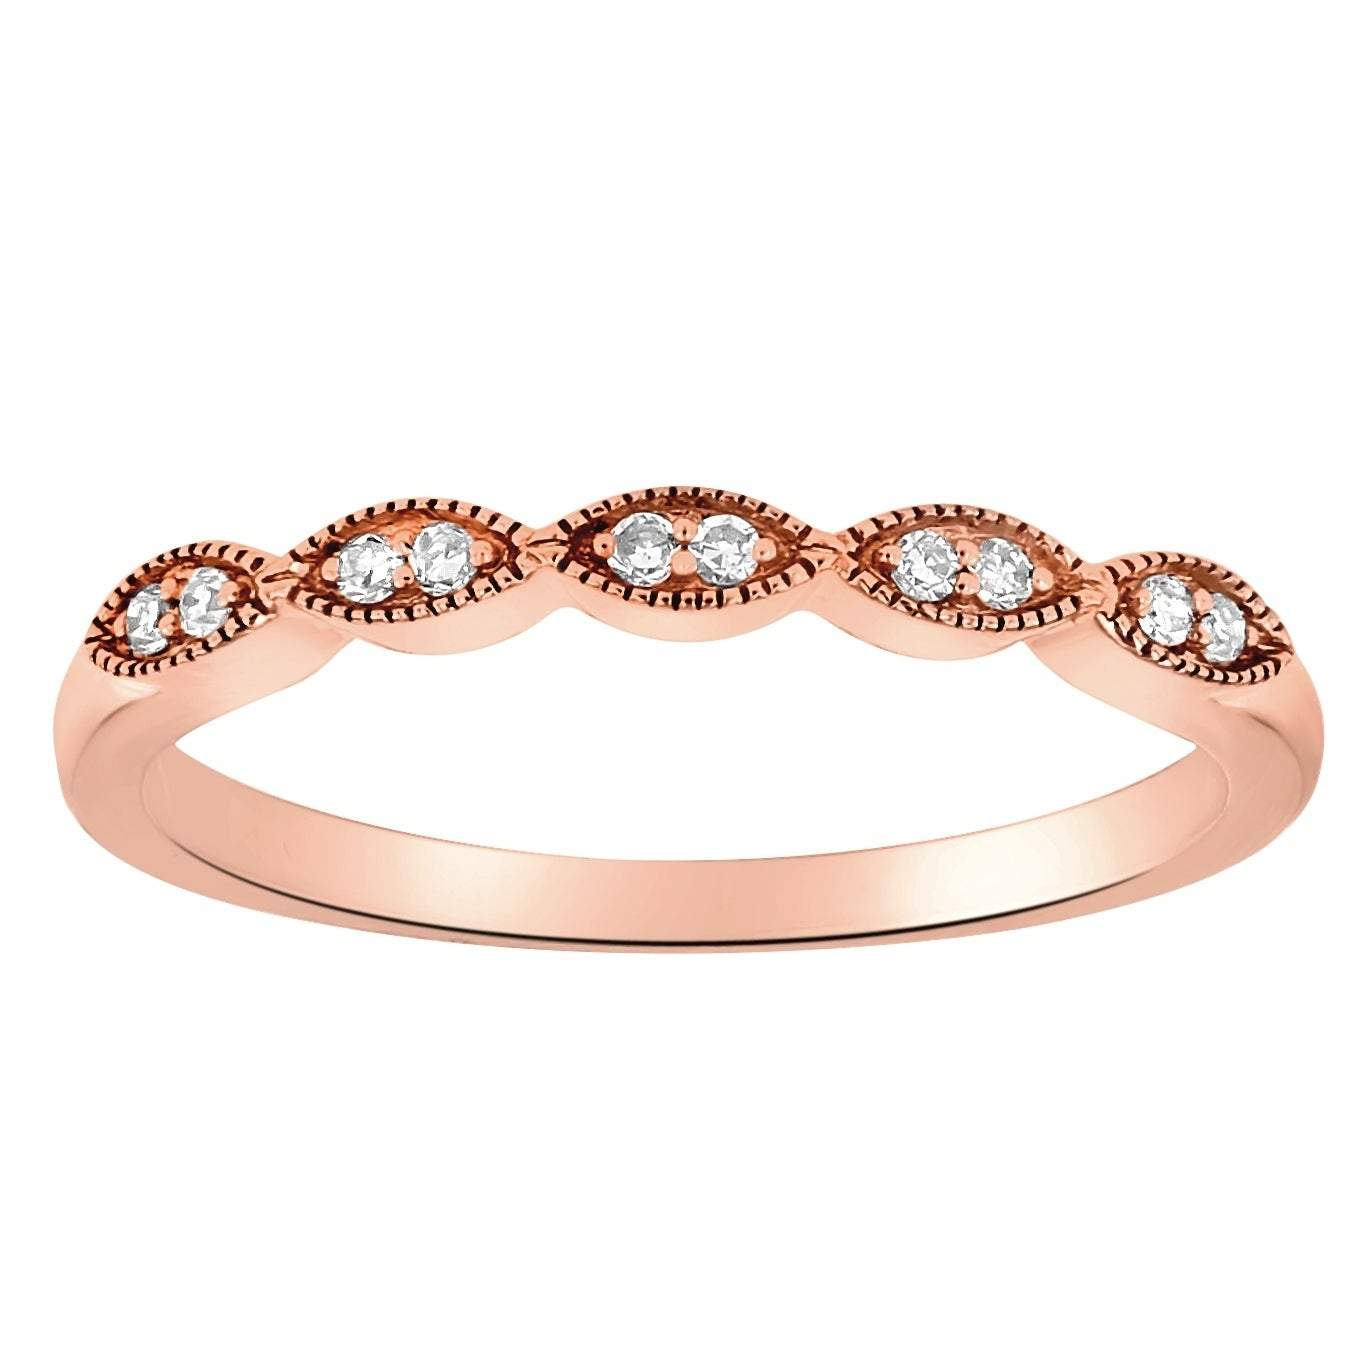 14K Rose Gold 1/14Ct Tdw Diamond Vintage Inspired Anniversary Band Ring –  White H I Intended For Most Popular Diamond Vintage Style Anniversary Bands In Rose Gold (View 5 of 25)